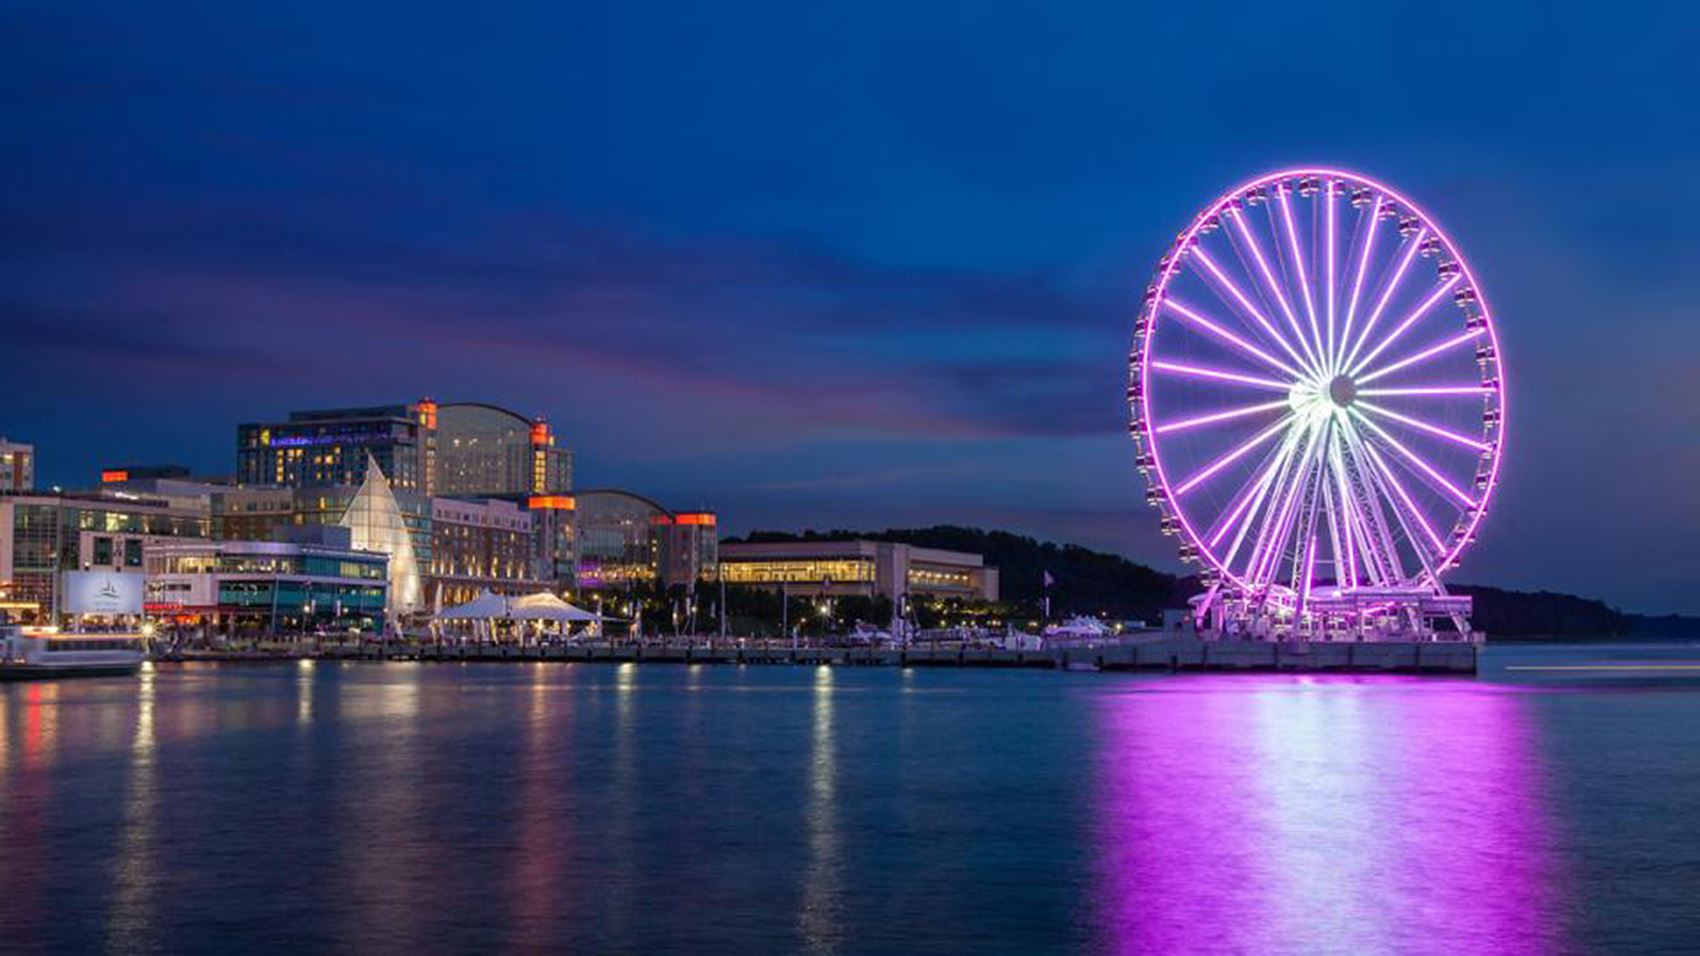 Image of the Capital Wheel at the National Harbor in Purple Lights for Domestic Violence Awareness Month